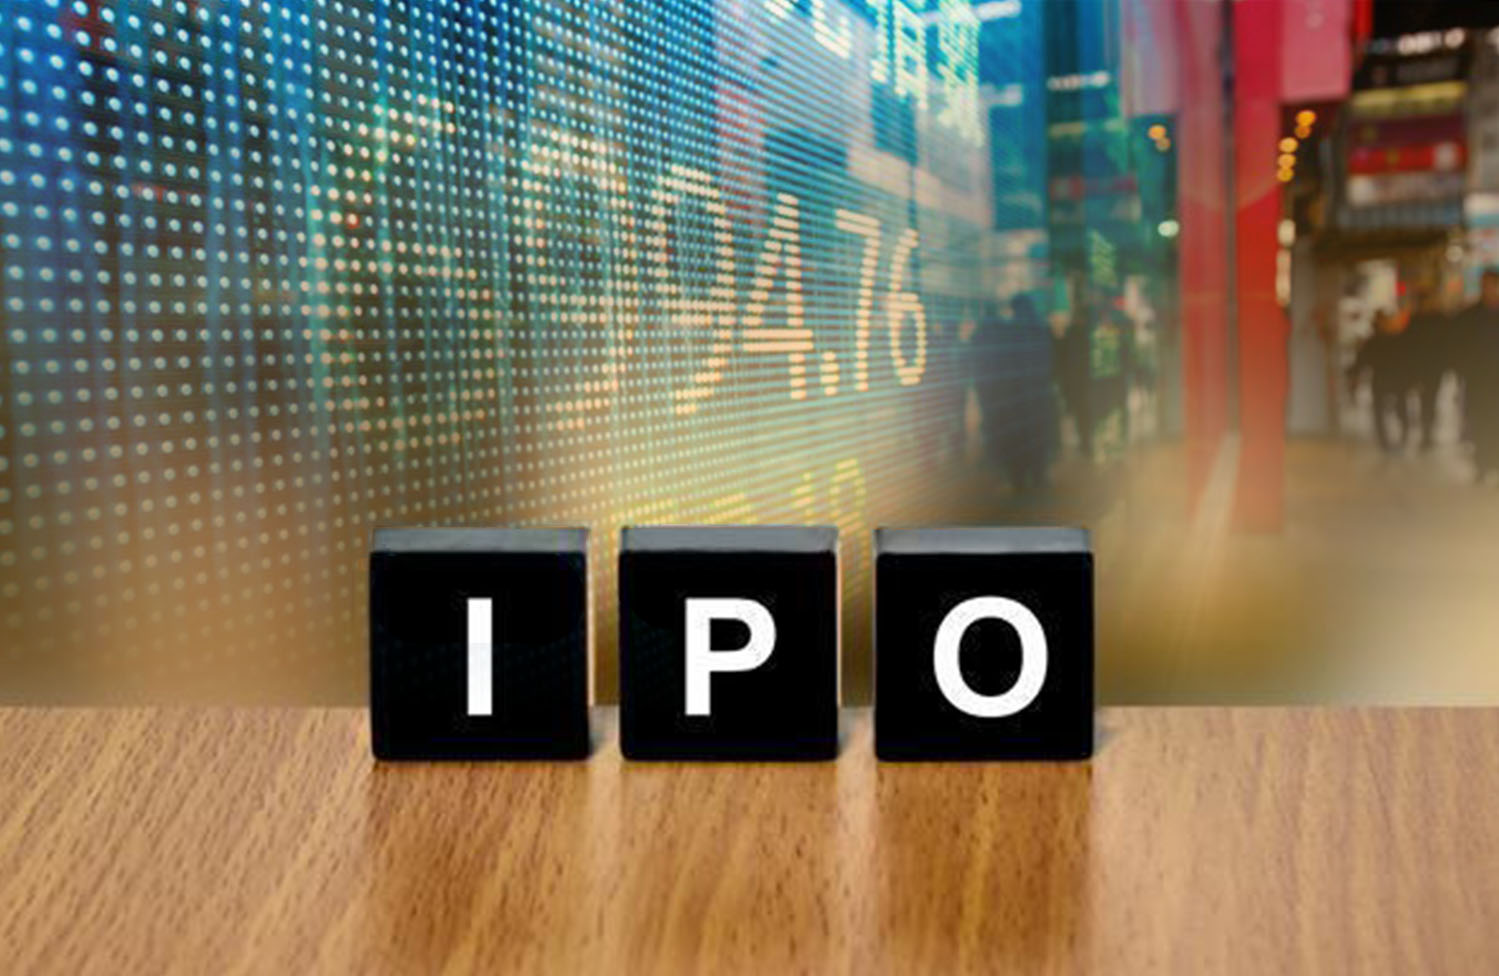 IPO stock price